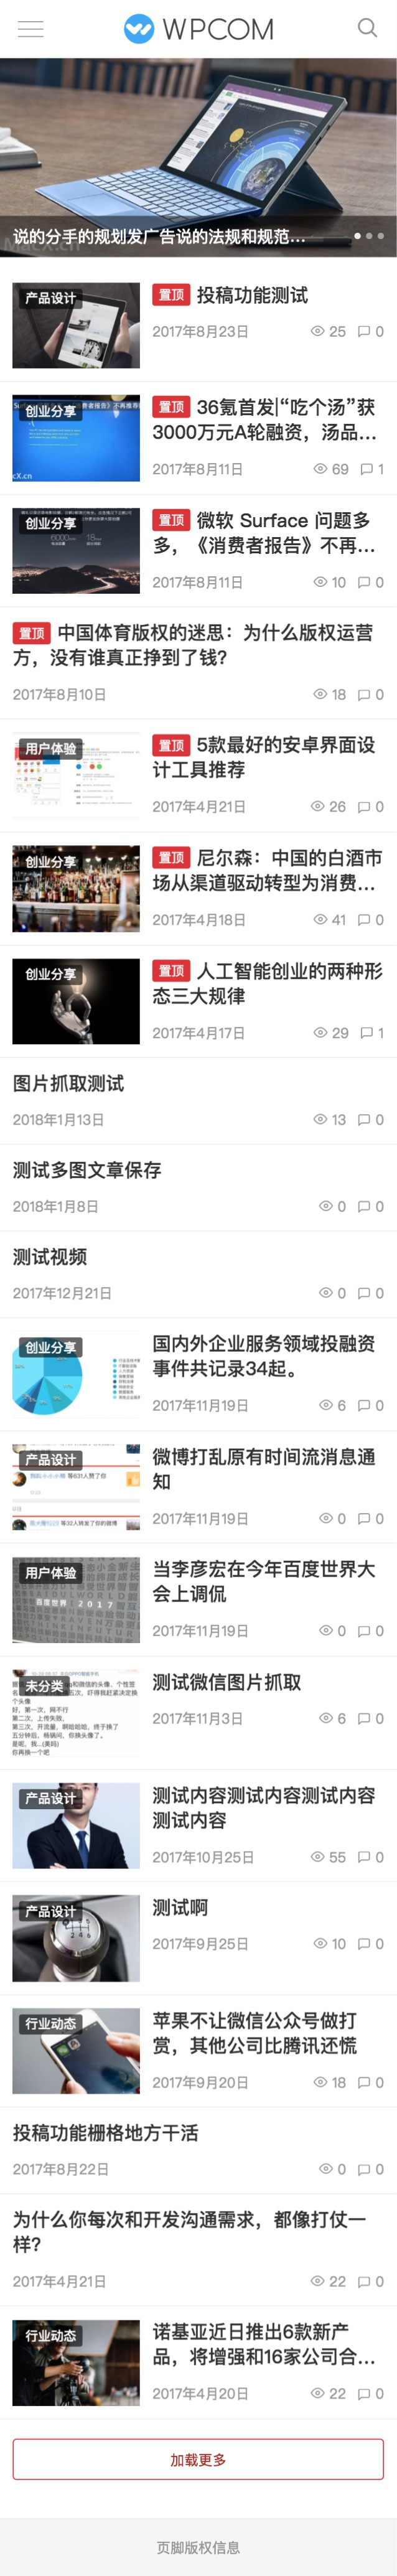 WP Mobile X WordPress手机端主题